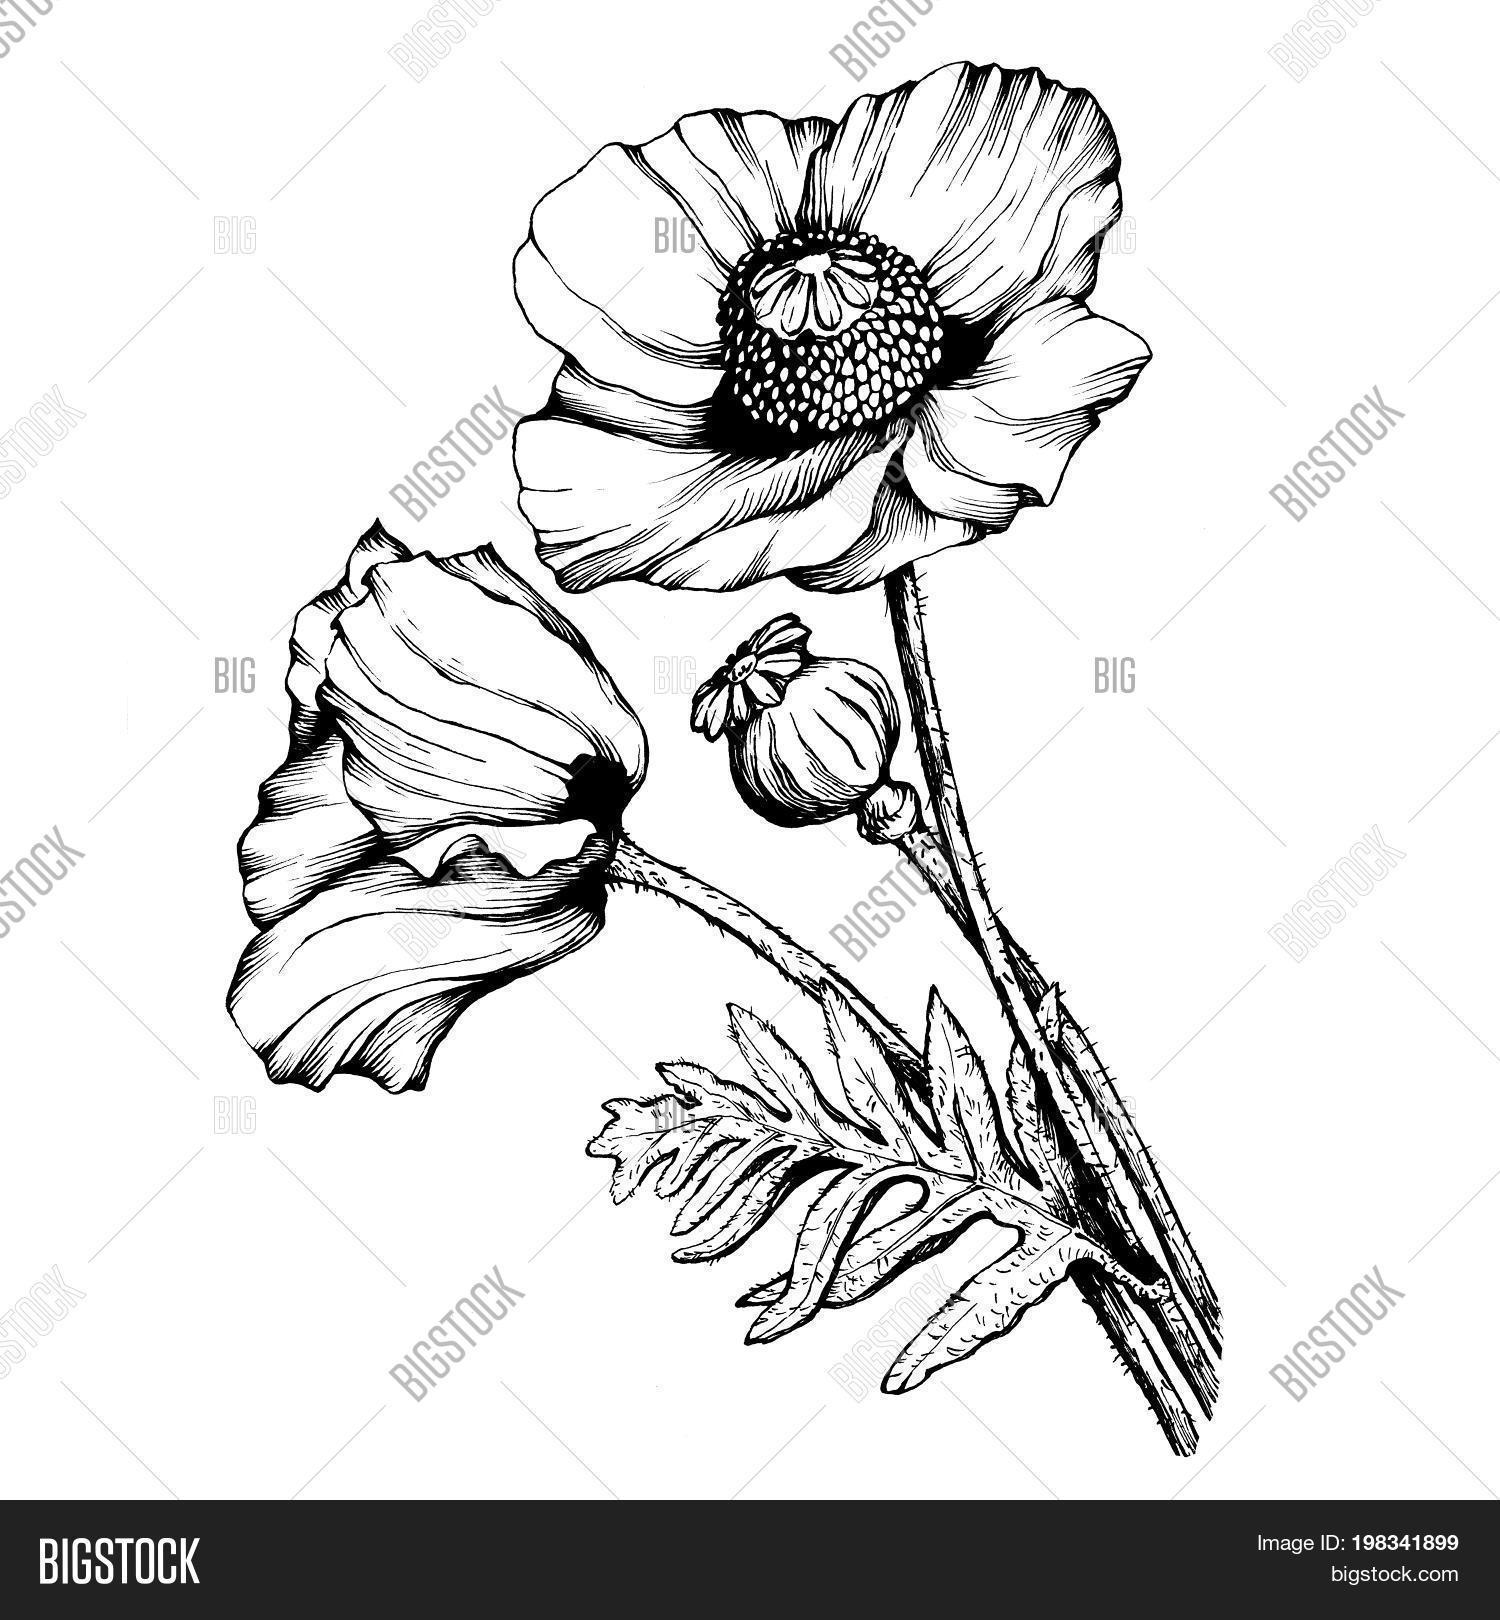 Graphic Branch Poppies Image Photo Free Trial Bigstock